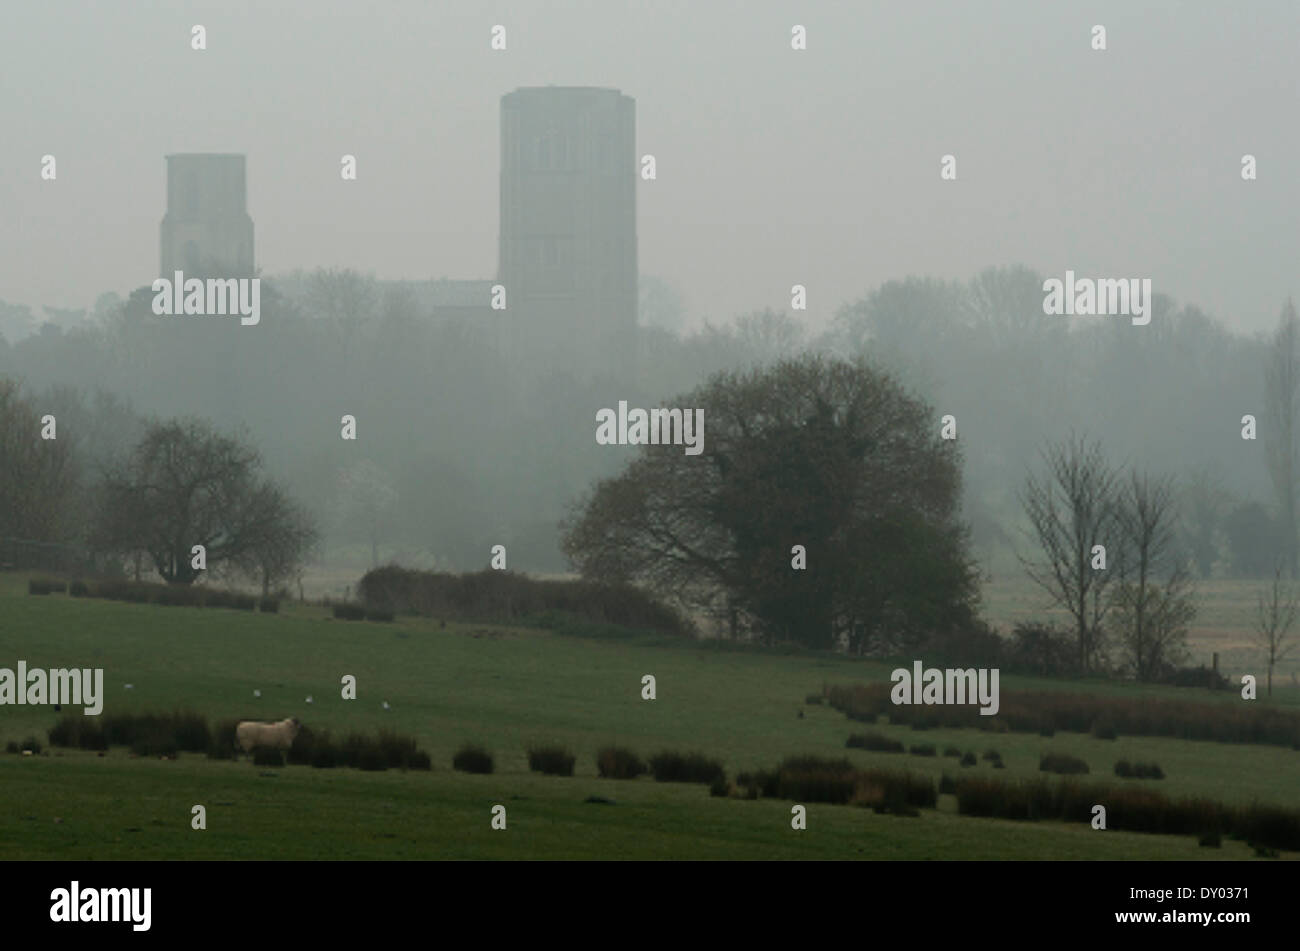 WYMONDHAM, Norfolk, UK, 2nd April 2014. Wymondham Abbey, the 900-year old parish church of the Norfolk market town, looms out of the morning mist. The East Anglian region is expected to see air pollution levels peak due to a combination of light winds, dust from Saharan Africa, and industrial pollution, according to a forecast from the UK Government's  Department for Environment, Food and Rural Affairs (DEFRA). Credit:  Keith Whitmore/Alamy Live News - Stock Image